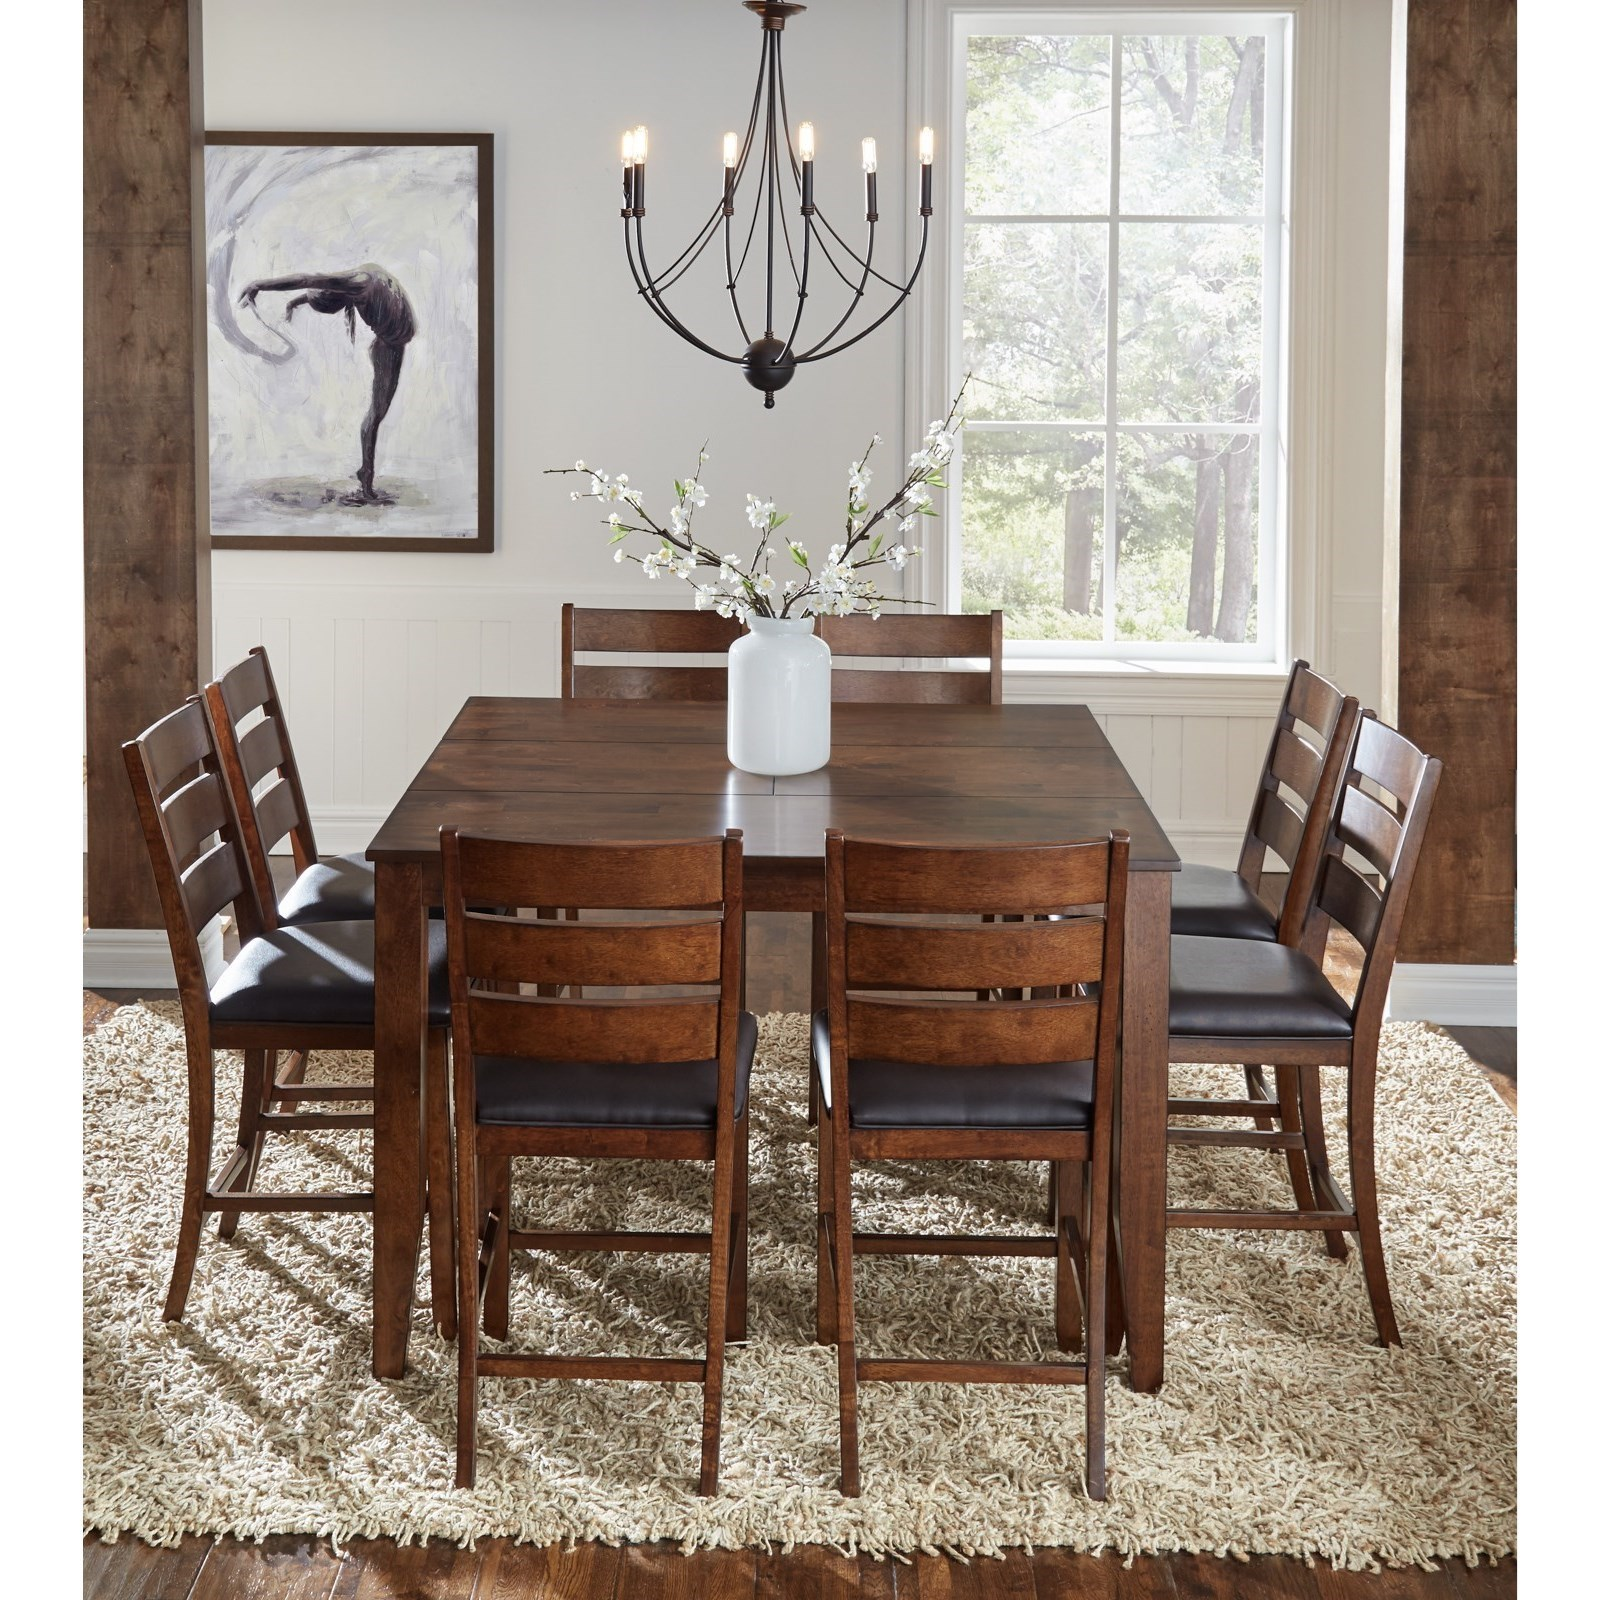 Mason 9 Piece Gathering Height Table And Chair Dining Set By AAmerica